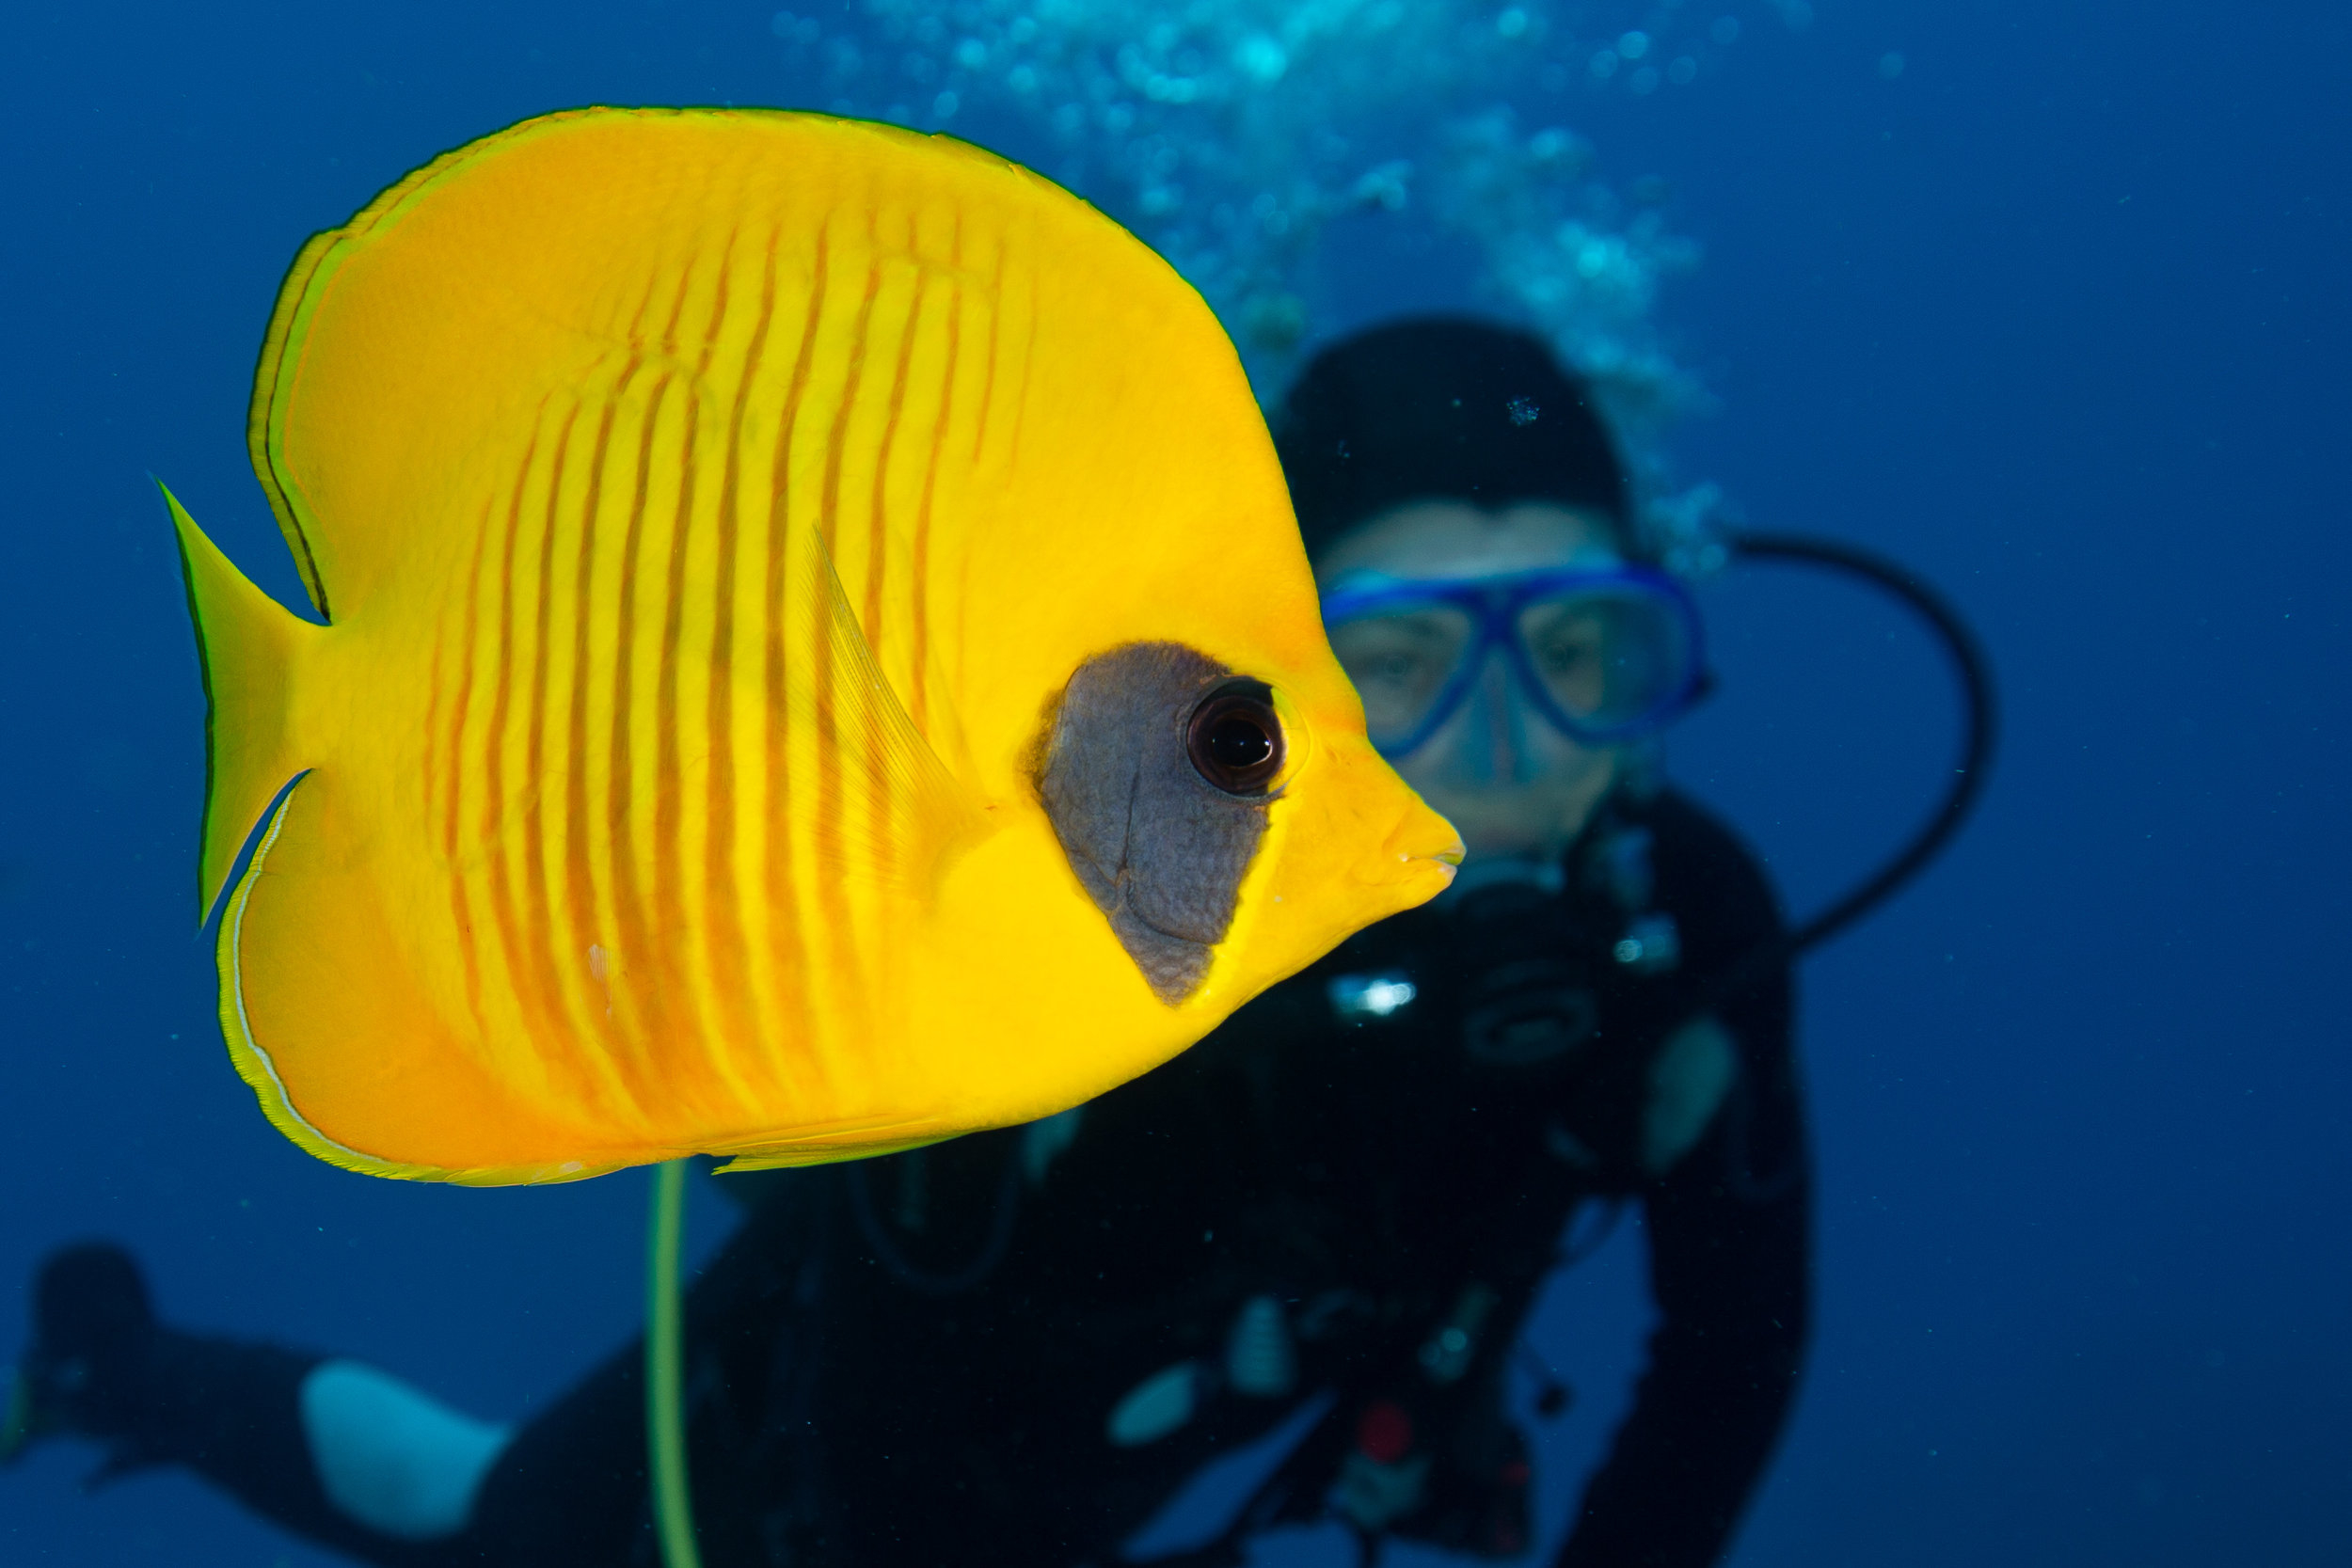 Bluecheeked Butterflyfish, Fury Shoal, Red Sea - Egypt - Wild Earth Expeditions